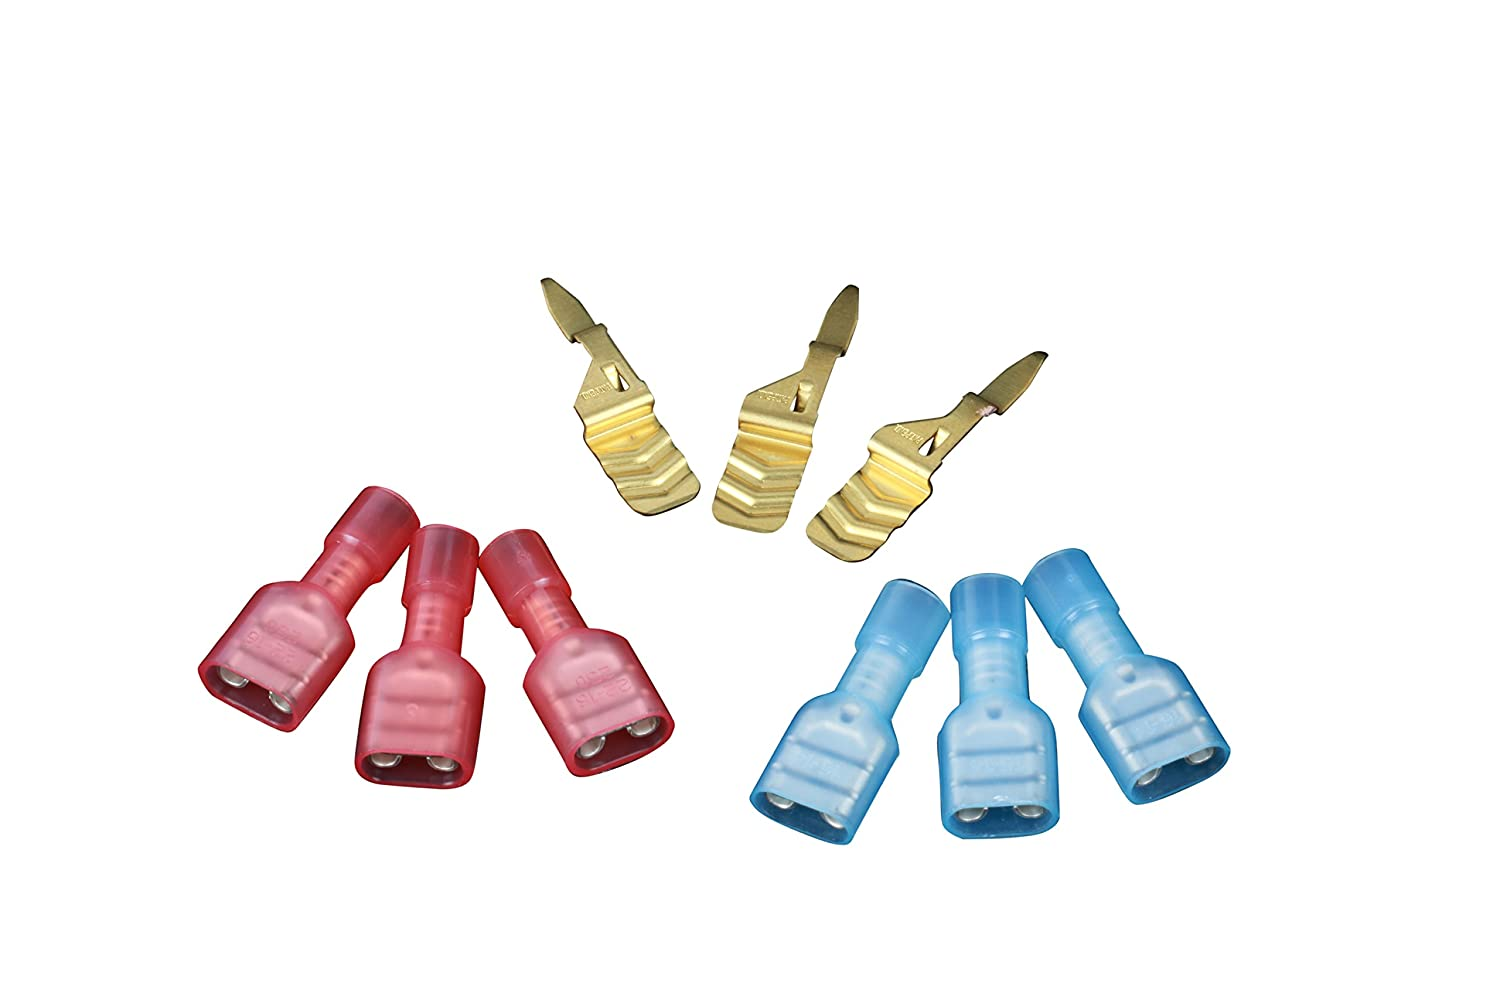 WirthCo 30800 Fuse Tap Kit for Mini Fuses